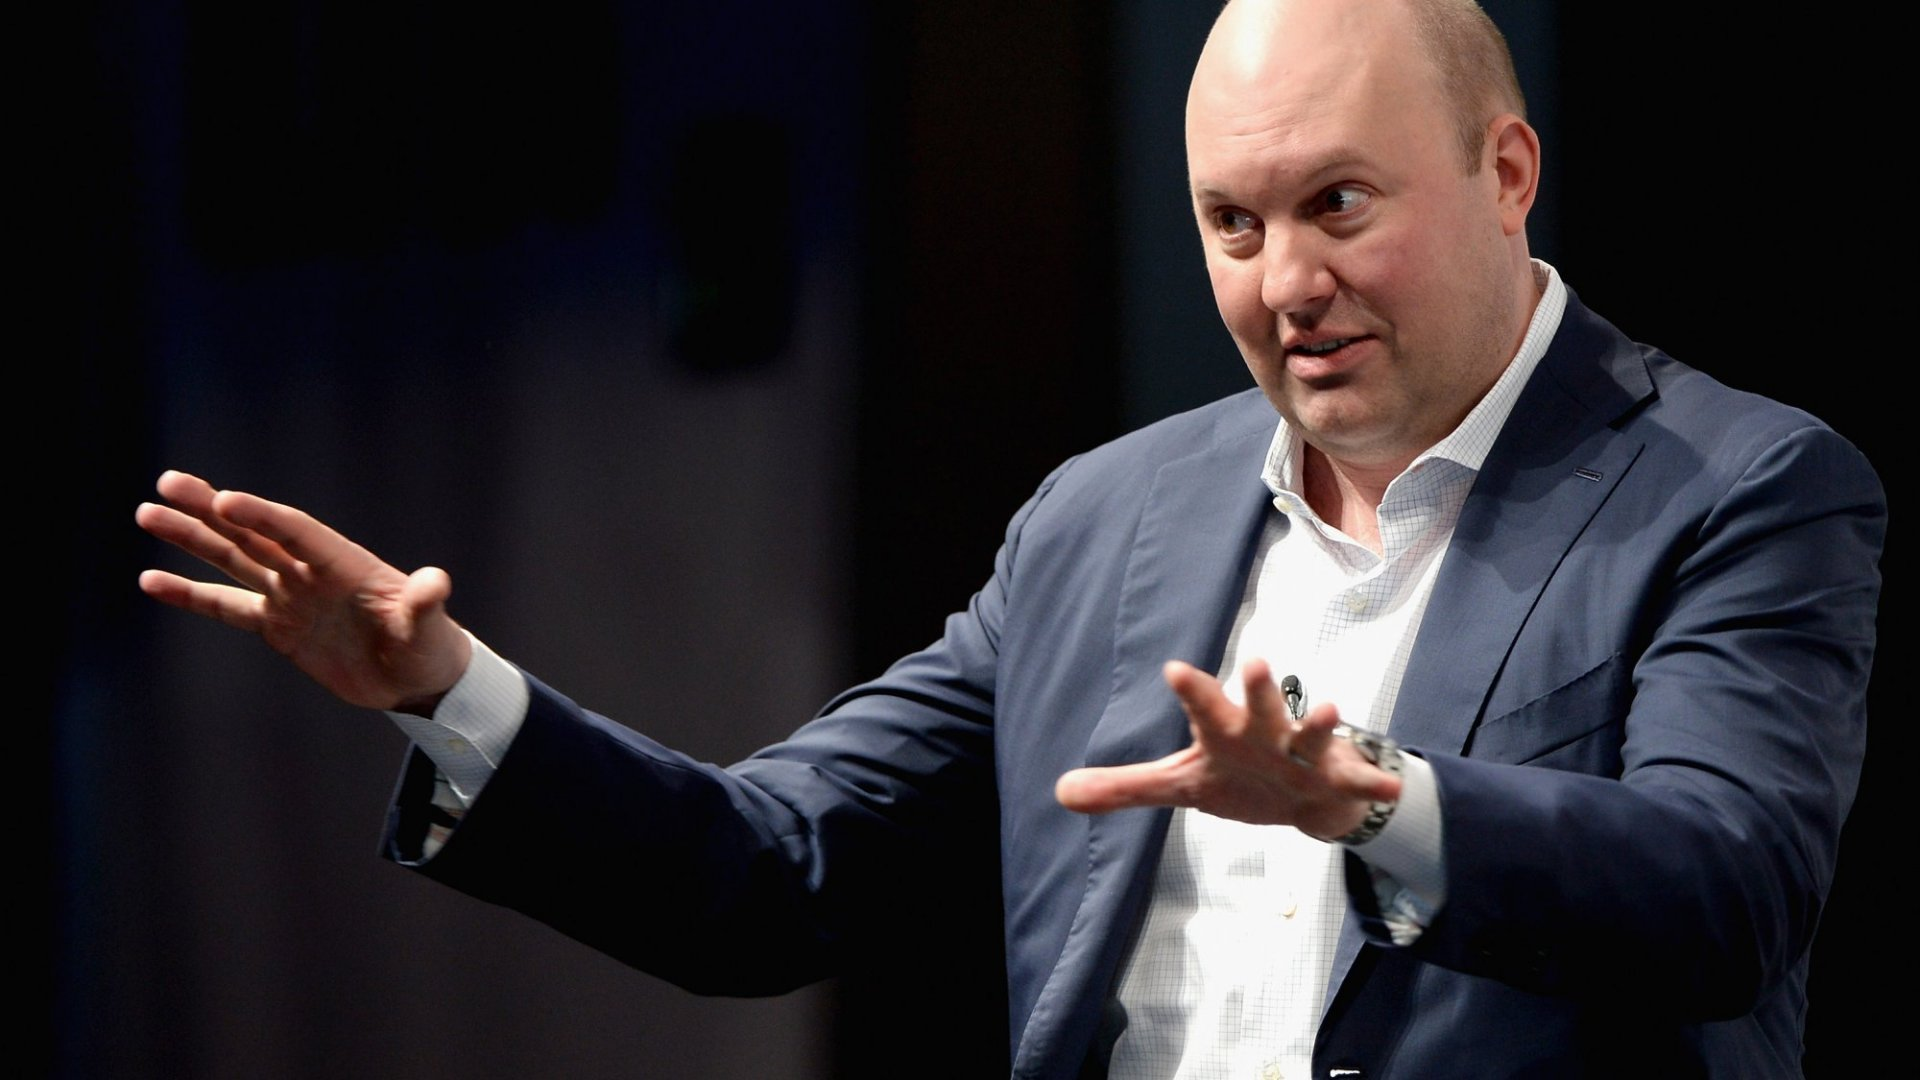 Marc Andreessen Predicts Future Wave of Big Exits for Tech Startups